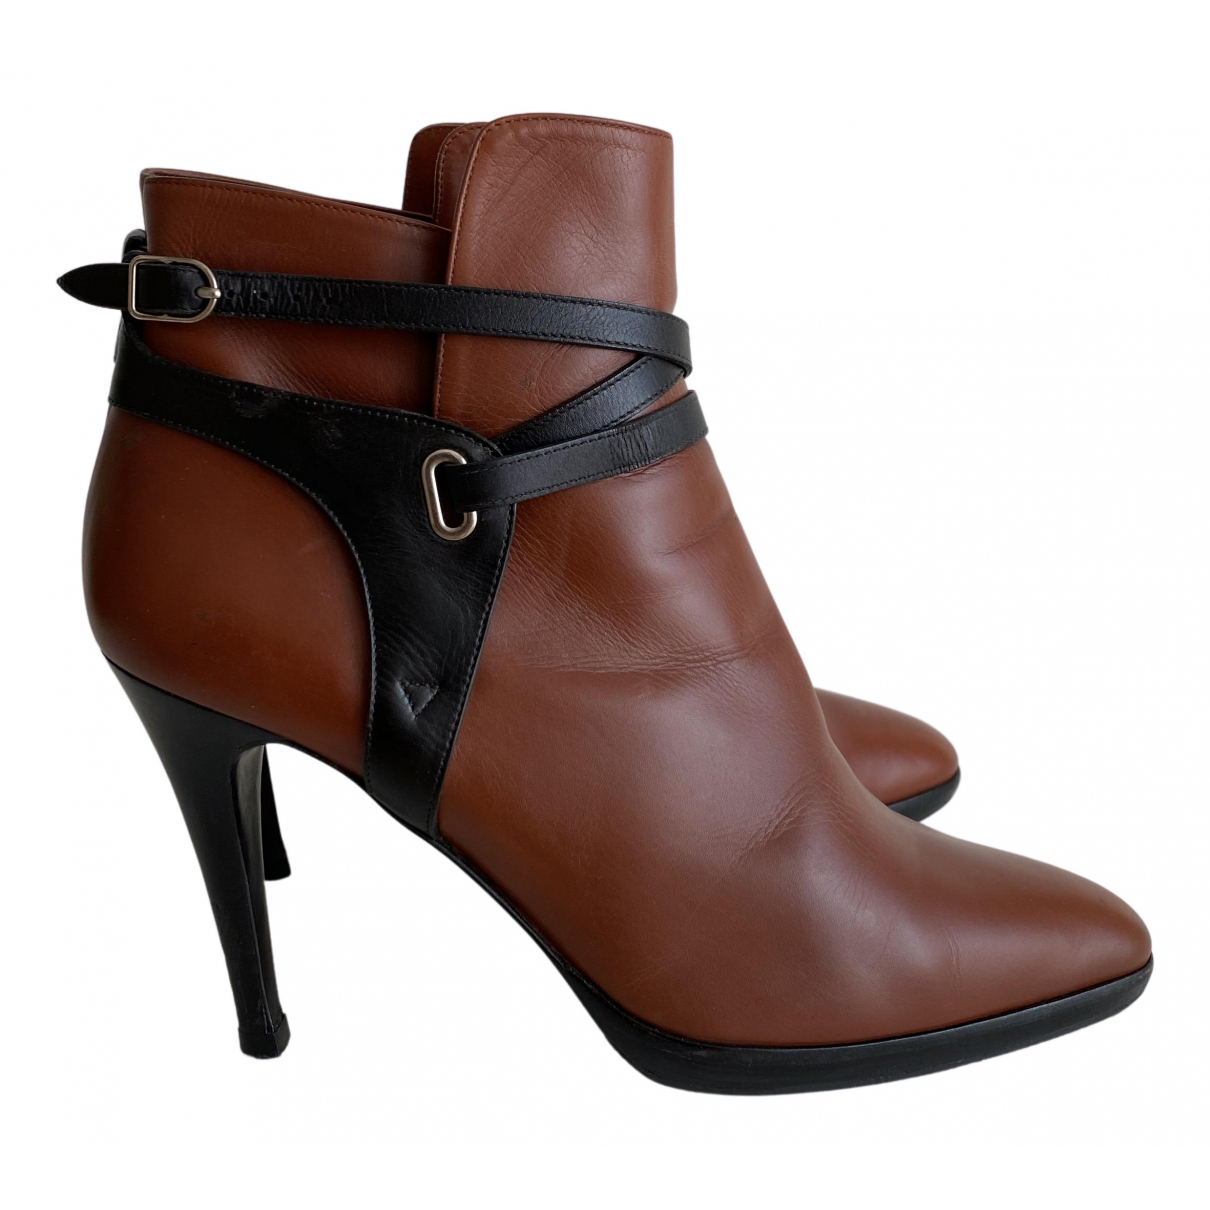 Hermès N Brown Leather Ankle boots for Women 39.5 EU